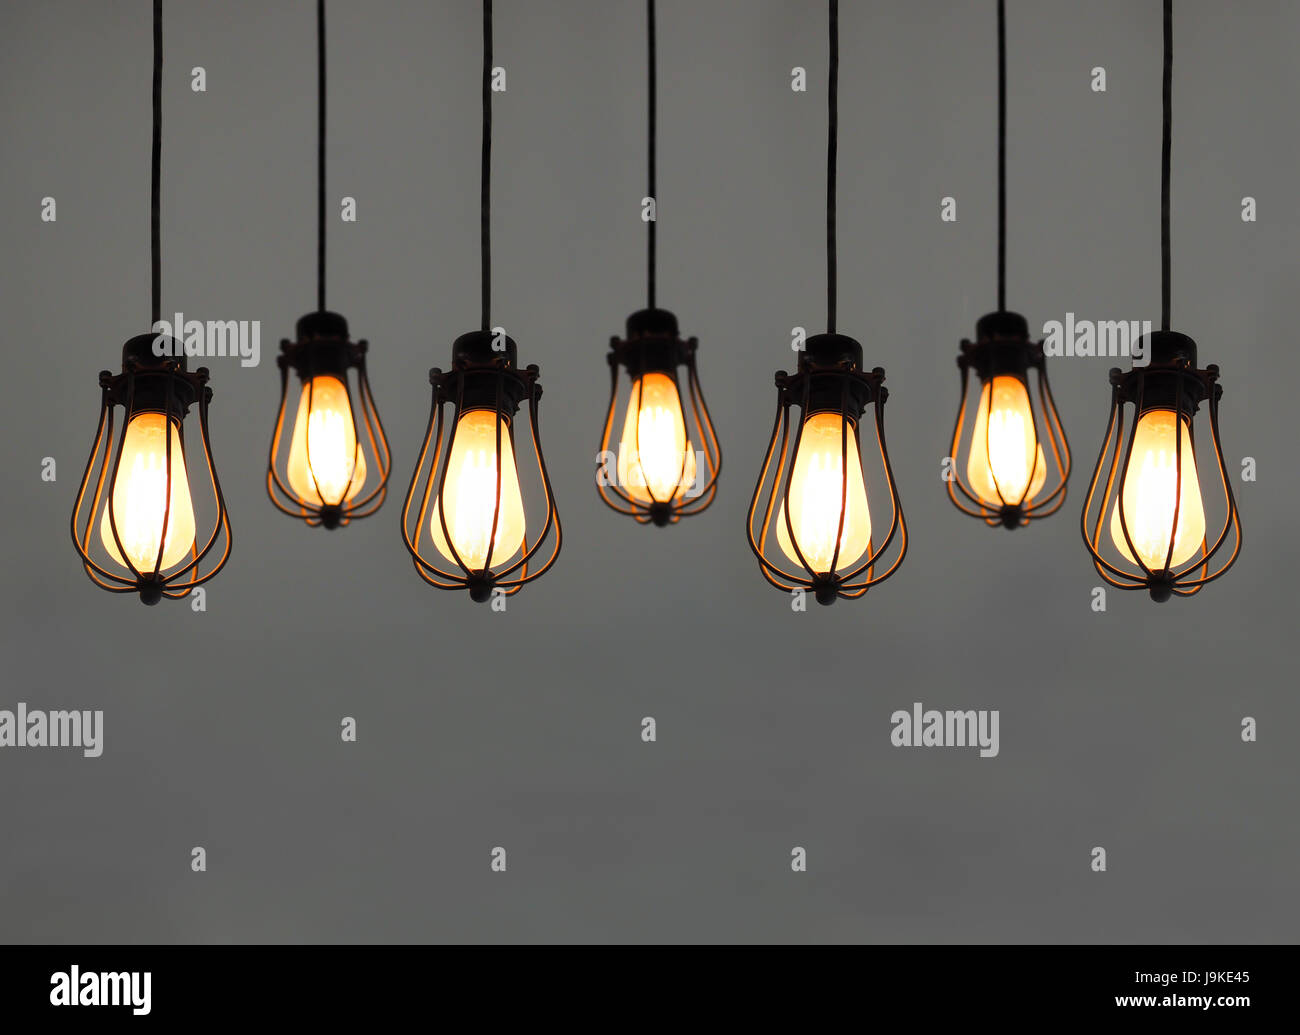 Old hanging lamp with light bulbs in dark room stock photo beautiful hanging light bulbs on plain background for card banner wallpaper stock photo aloadofball Gallery